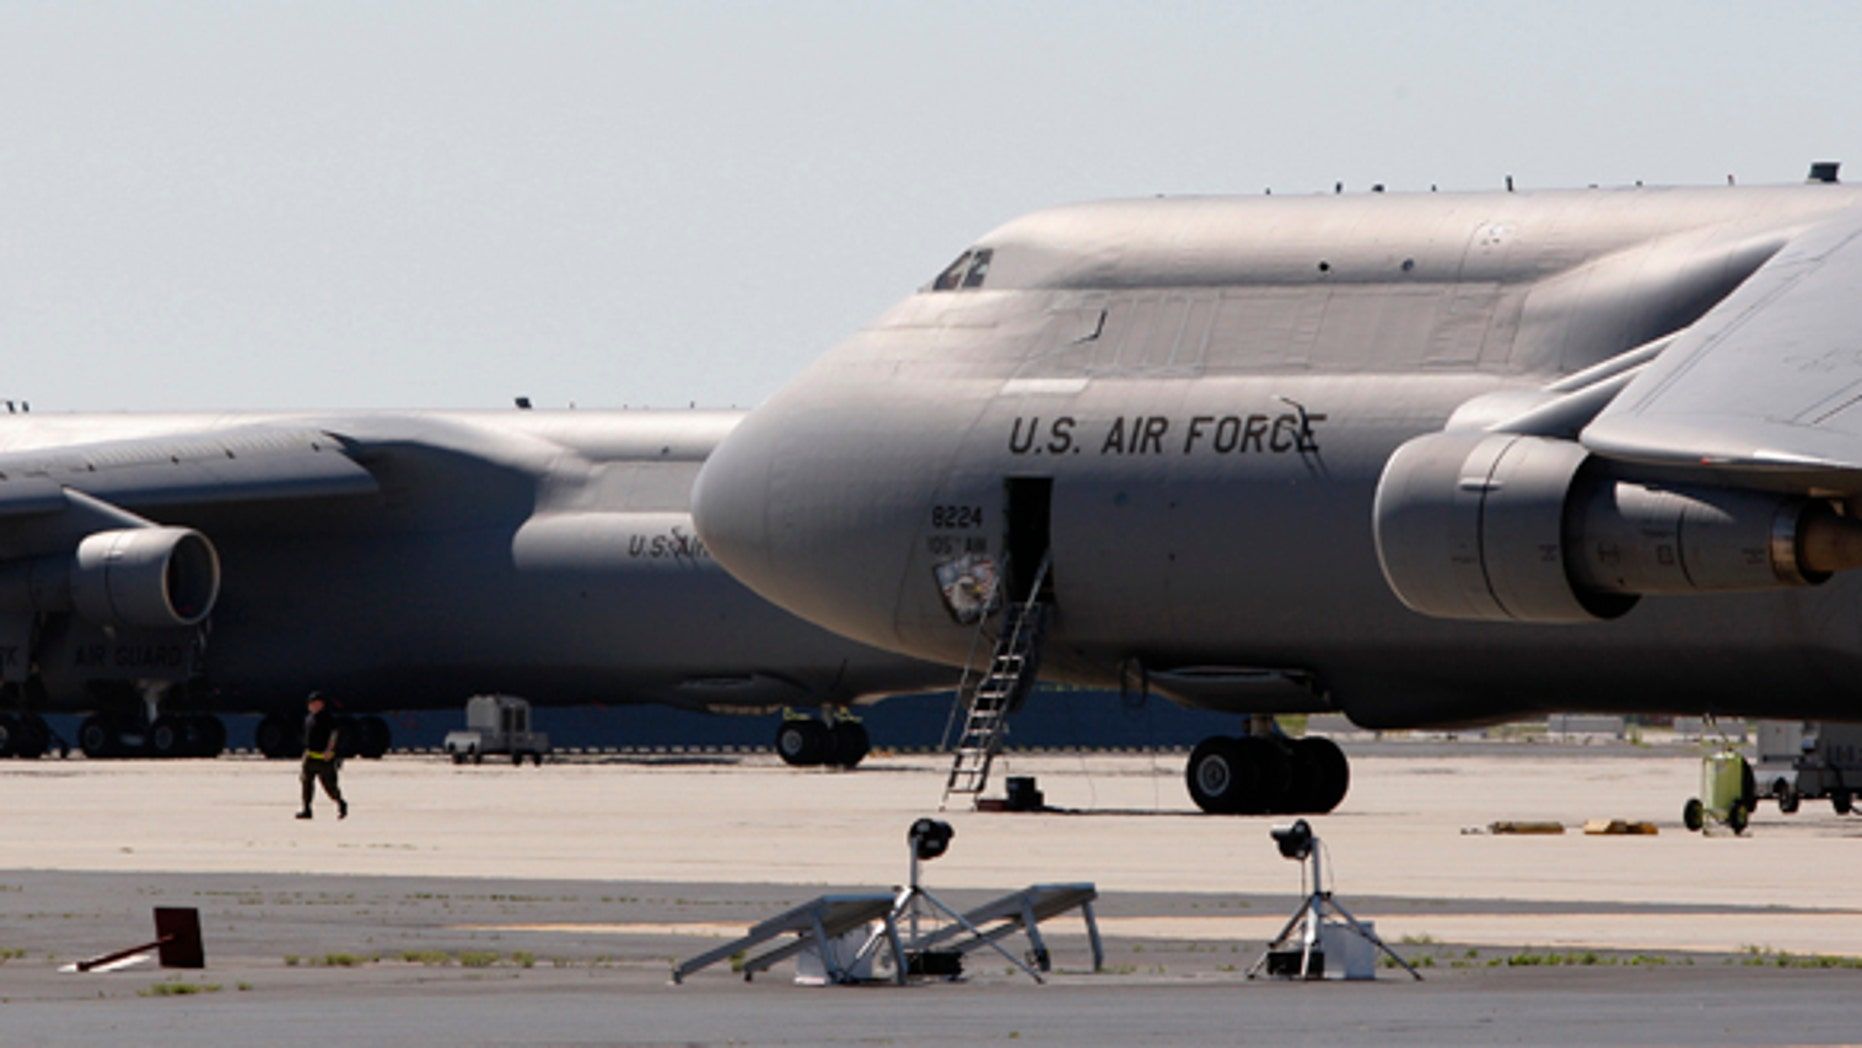 U.S. Air National Guard C-5 jets sit on the tarmac at Stewart Air National Guard Base in Newburgh, New York, May 21, 2009. The FBI and New York police arrested four Muslim men in Newburgh on Wednesday night after they planted what they believed to be explosives in two cars -- one parked outside each synagogue -- and planned to head to Stewart Air base with what they thought was an activated stinger surface-to-air missile.  REUTERS/Mike Segar  (UNITED STATES CRIME LAW MILITARY RELIGION TRANSPORT)